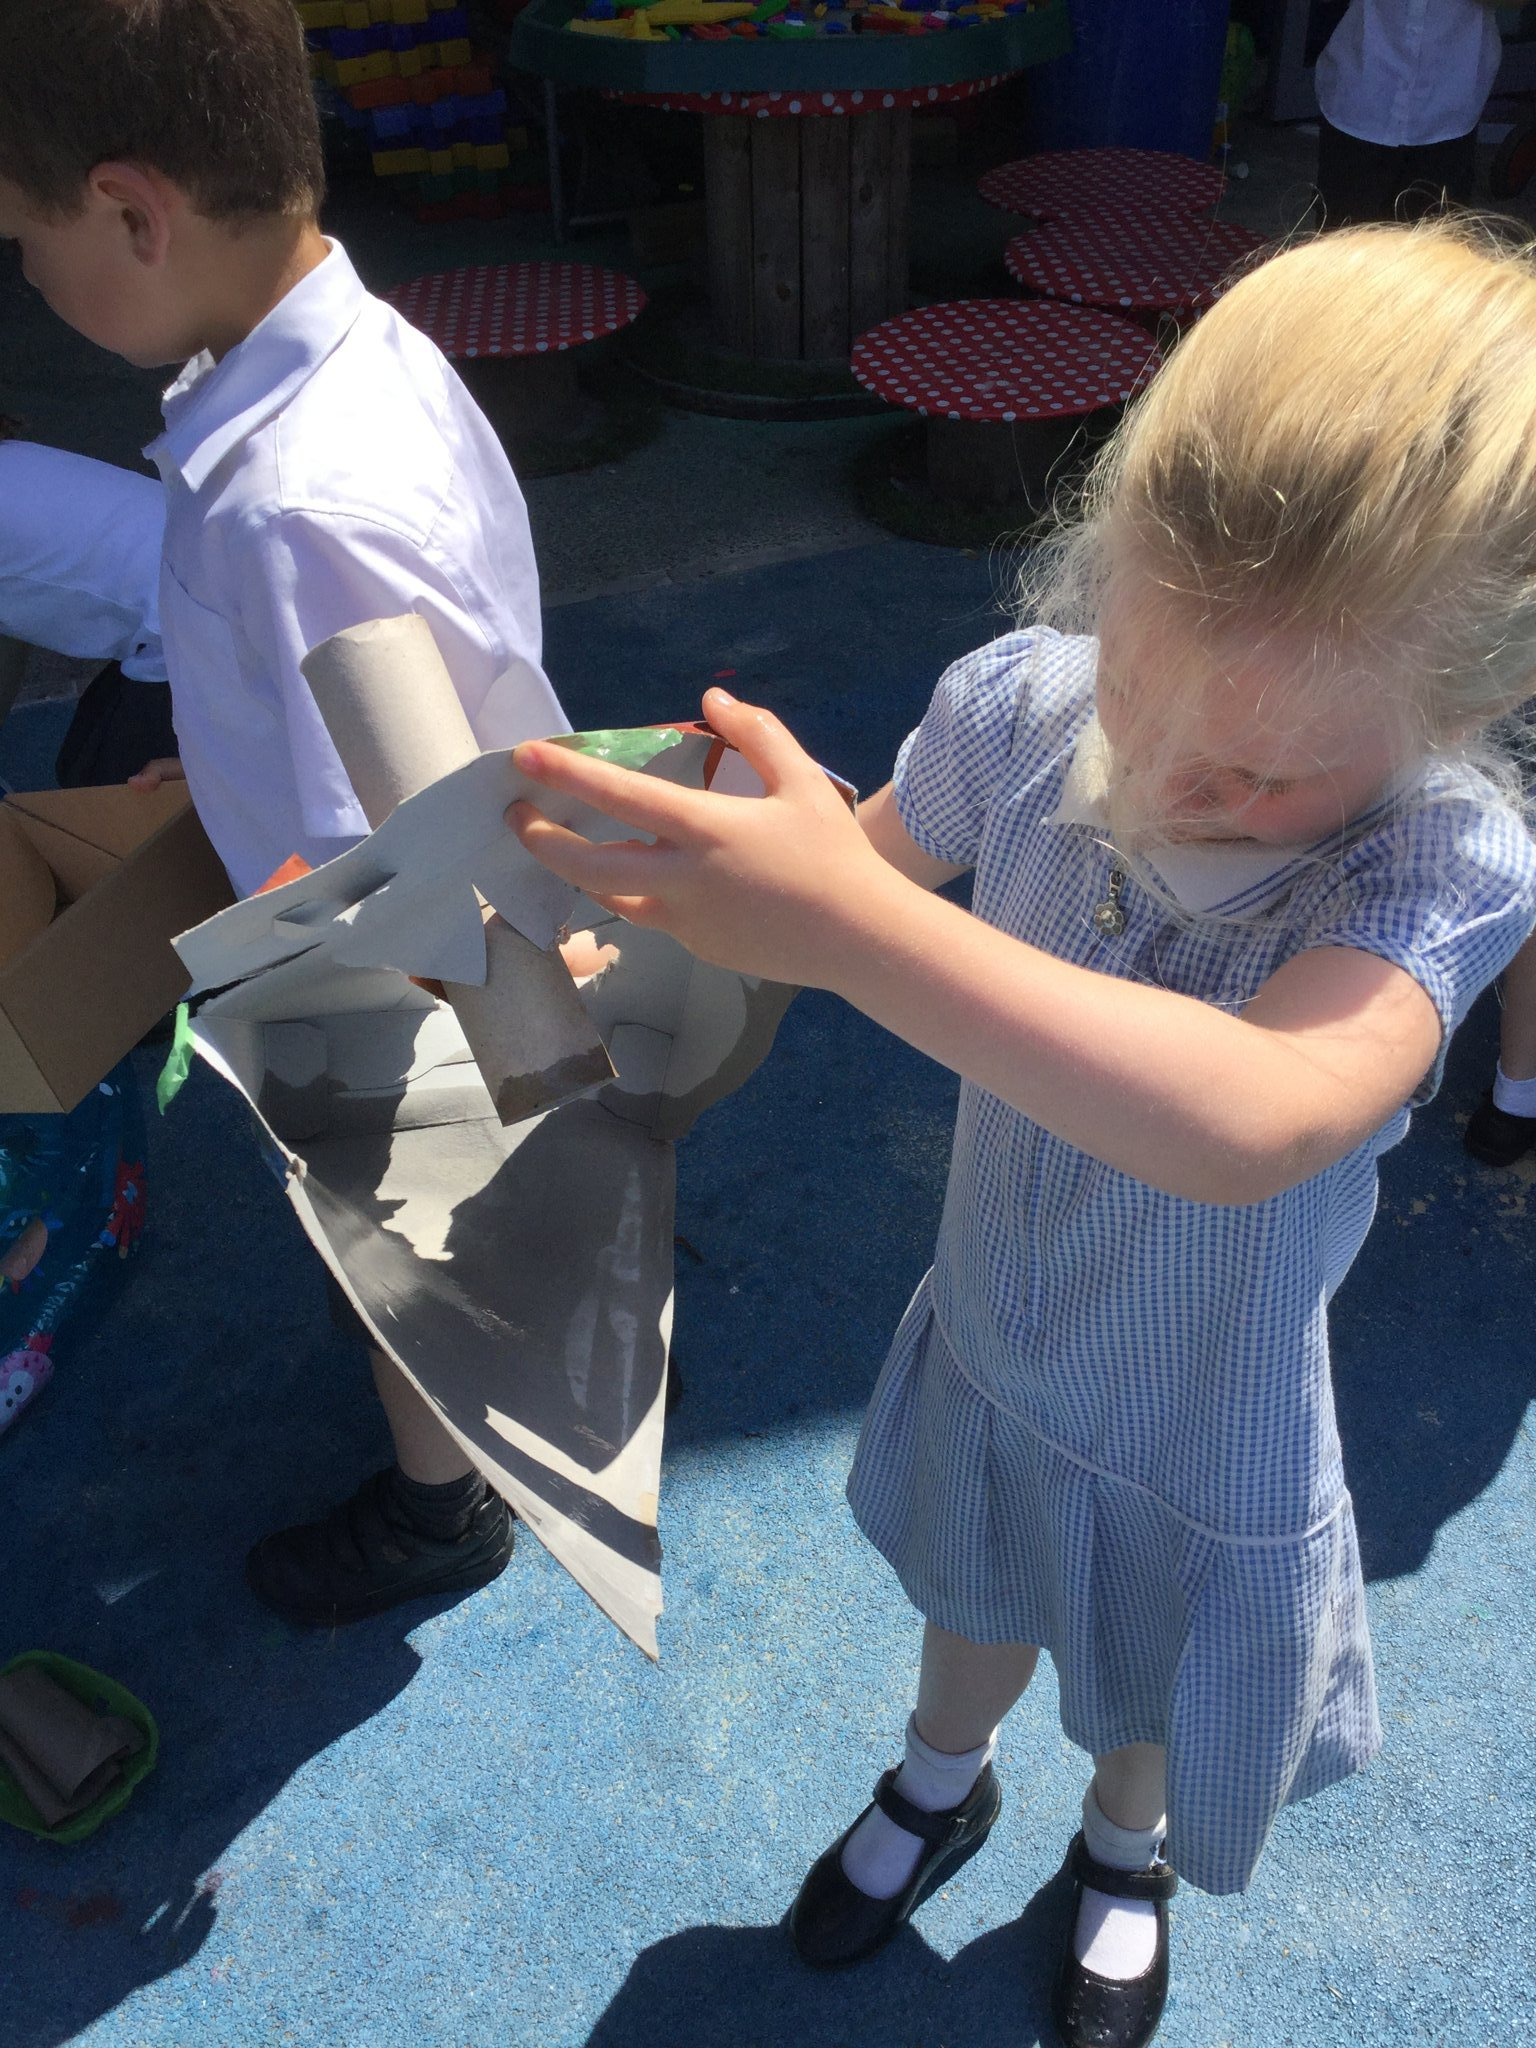 Sardines Rye Community Primary School Origami Dinosaurs A List Of Online Origamidinosaur Diagrams Next Week We Will Be Reading The Singing Mermaid By Julia Donaldson To Carry On With Our Sea Adventures Where Learning Take Us